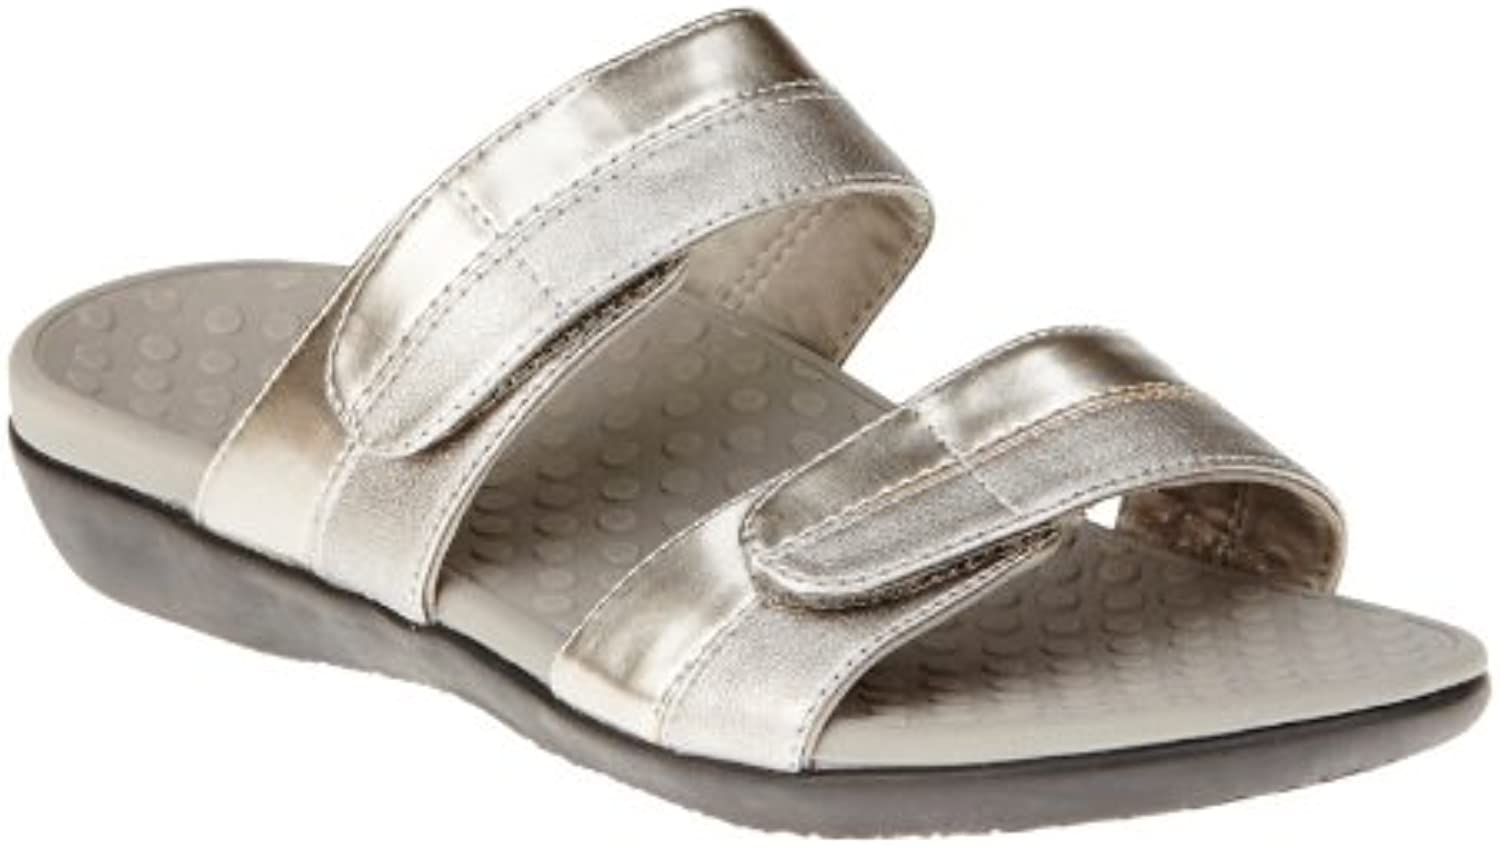 Vionic donna Pewter with Orthaheel Orthaheel Orthaheel Shore 6 B(M) US | Lo stile più nuovo